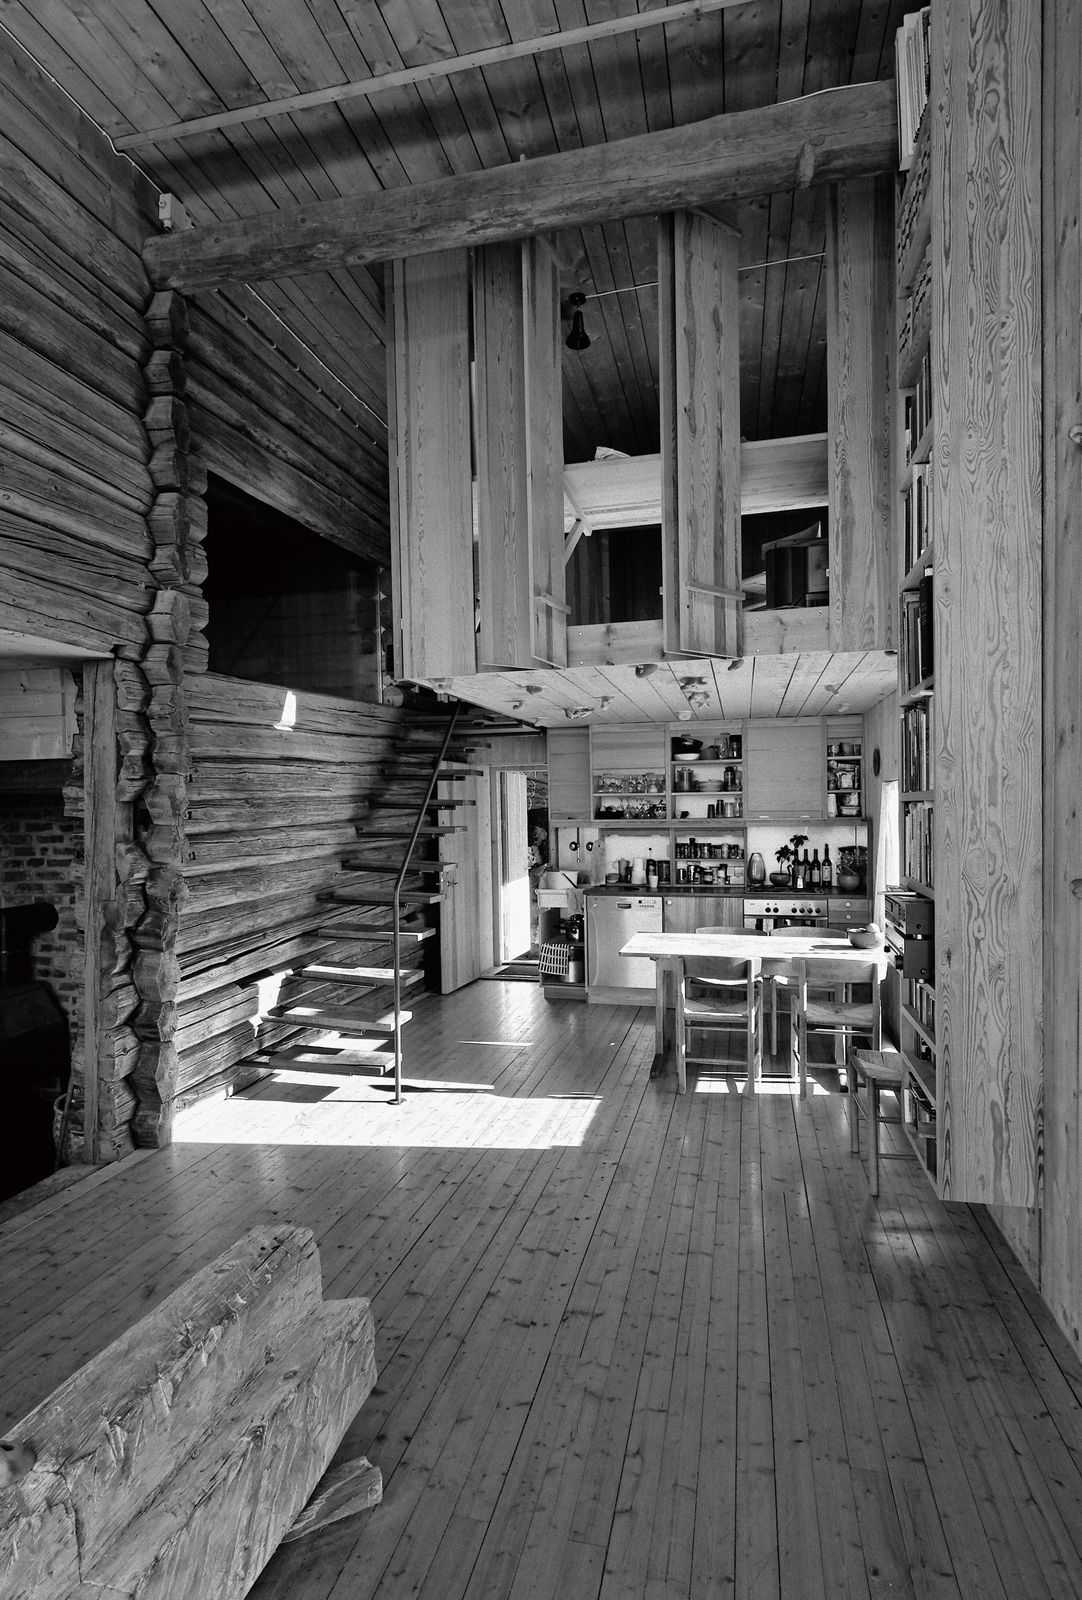 Farmhouse at Stange, Vestfold, remodelling for artist Knut Wold. Architect: Are Vesterlid.